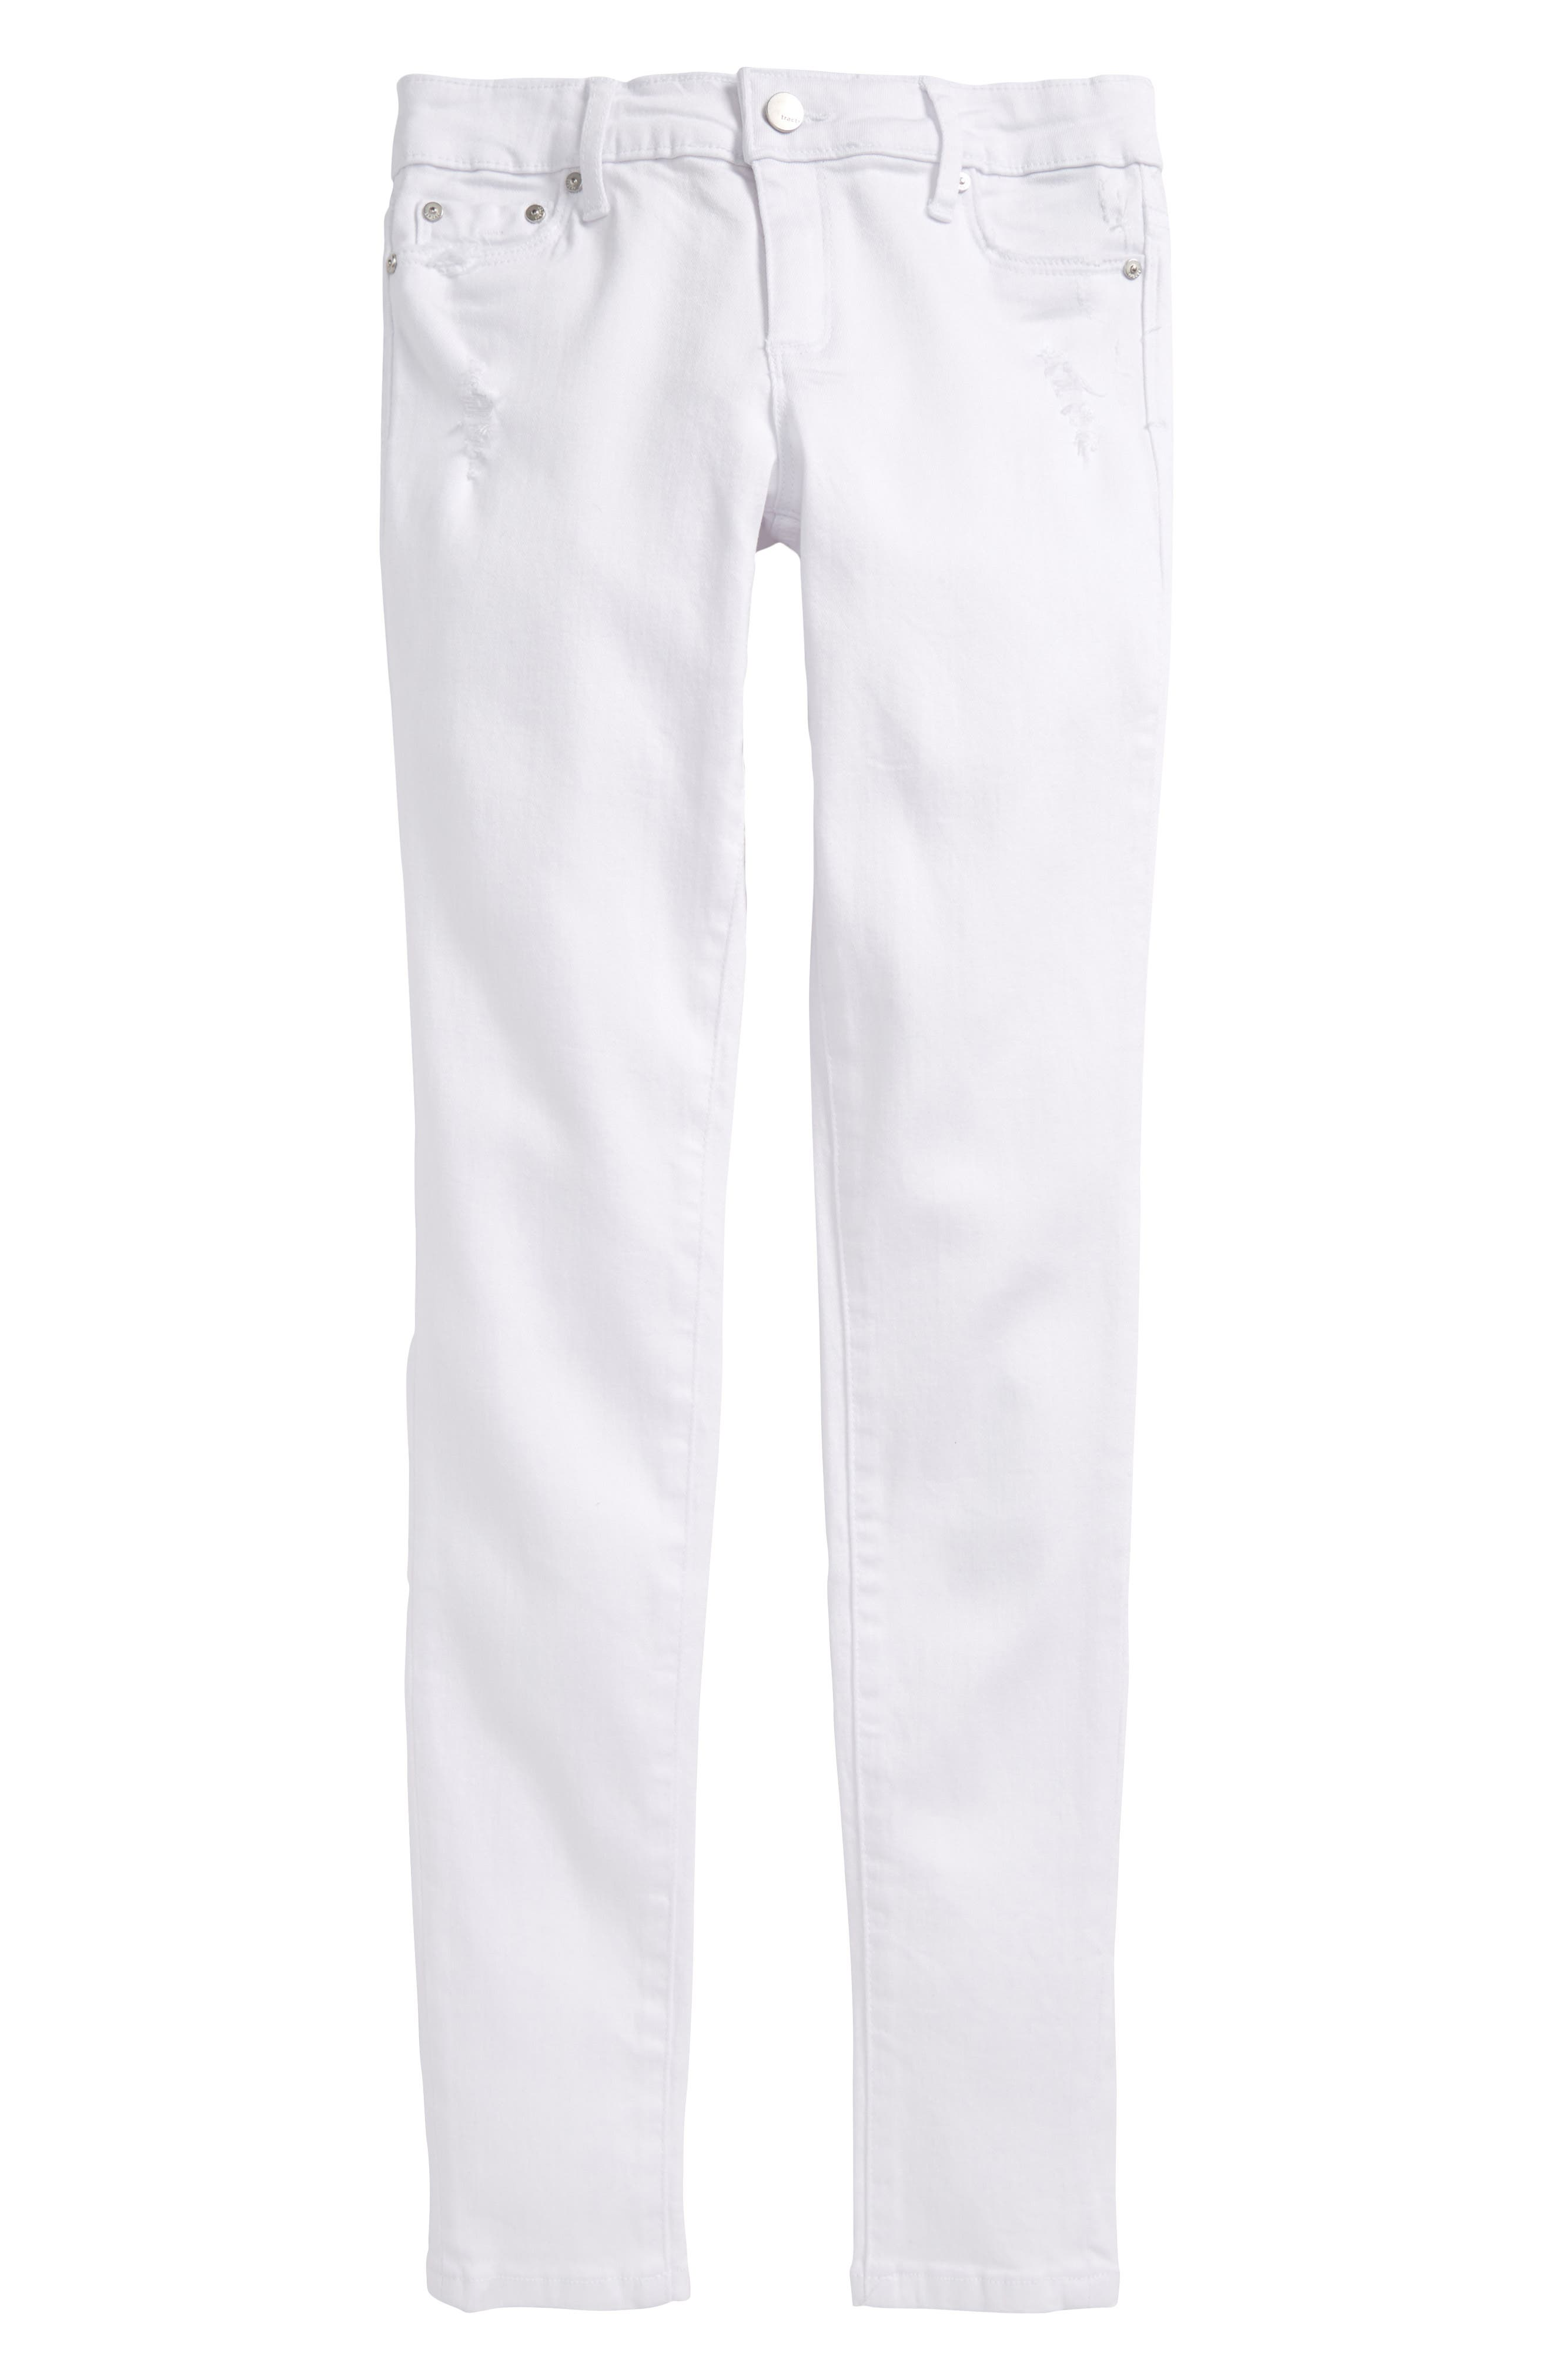 Main Image - Tractr Deconstructed Skinny Jeans (Big Girls)